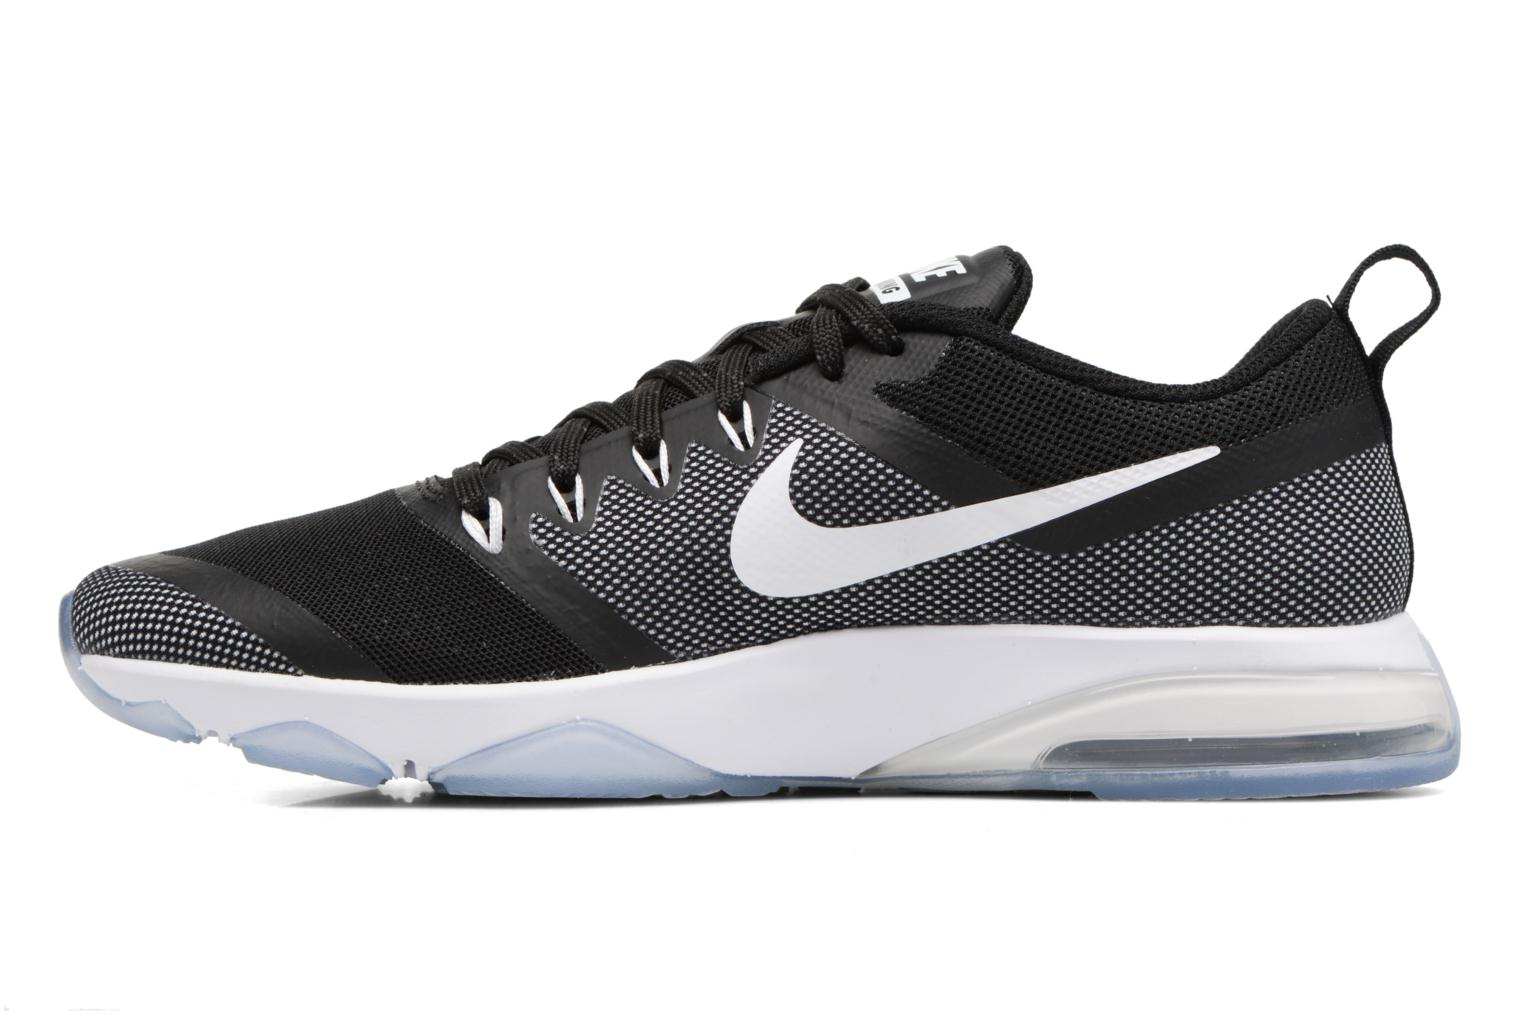 Wmns Nike Air Zoom Fitness Black/white